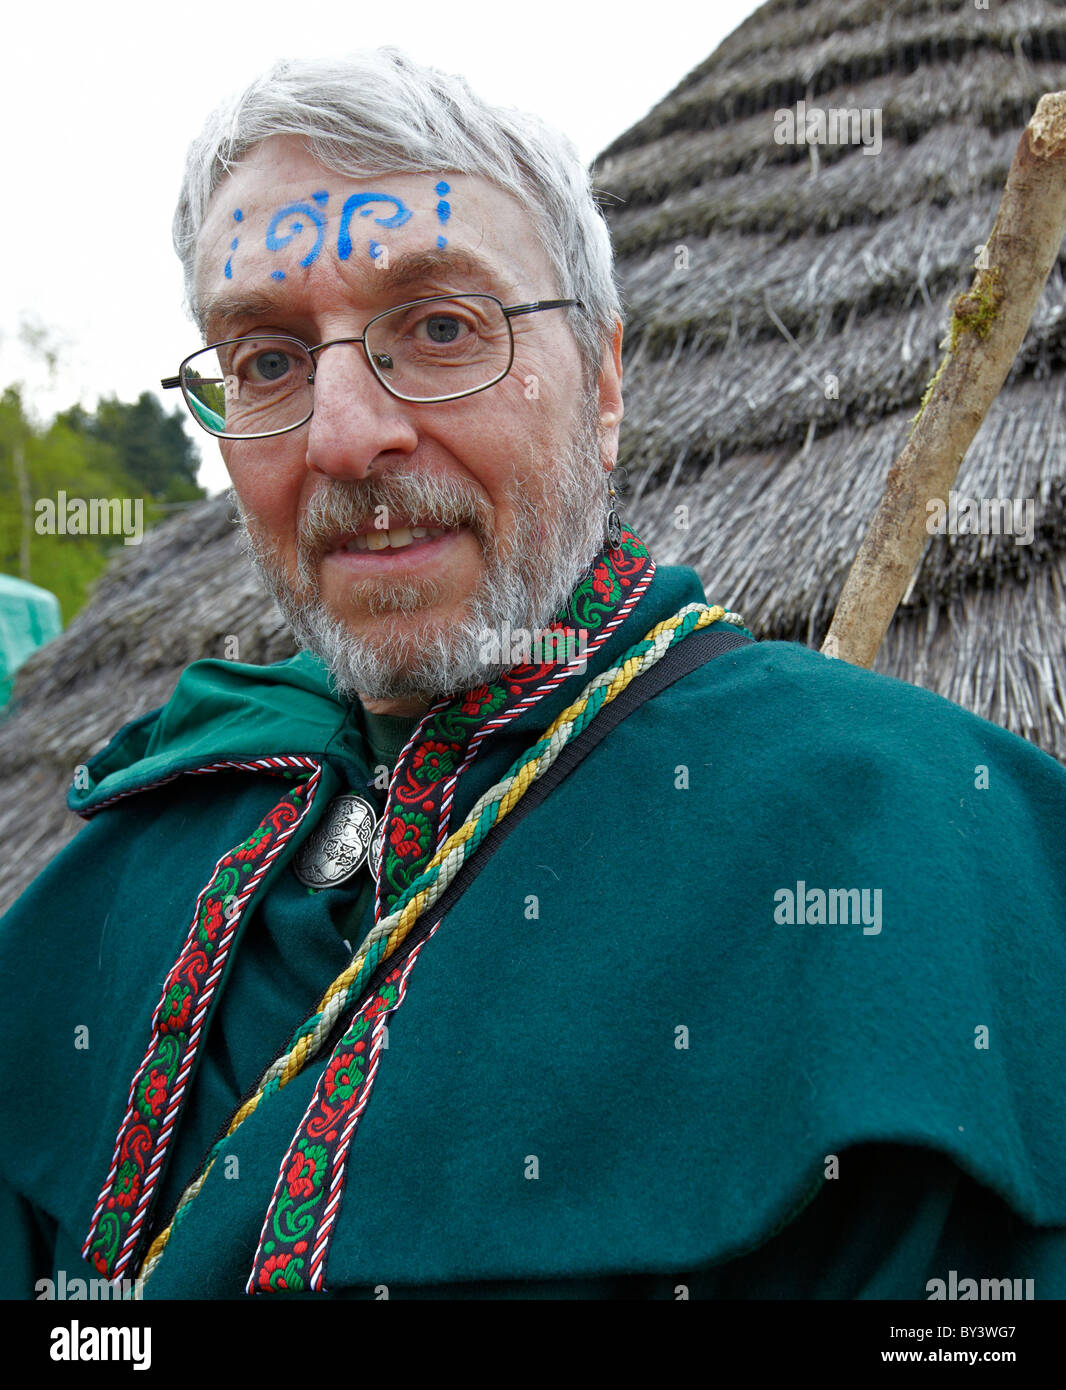 Male Druid At The Burning Of the Wickerman Butser Farm Sussex UK - Stock Image